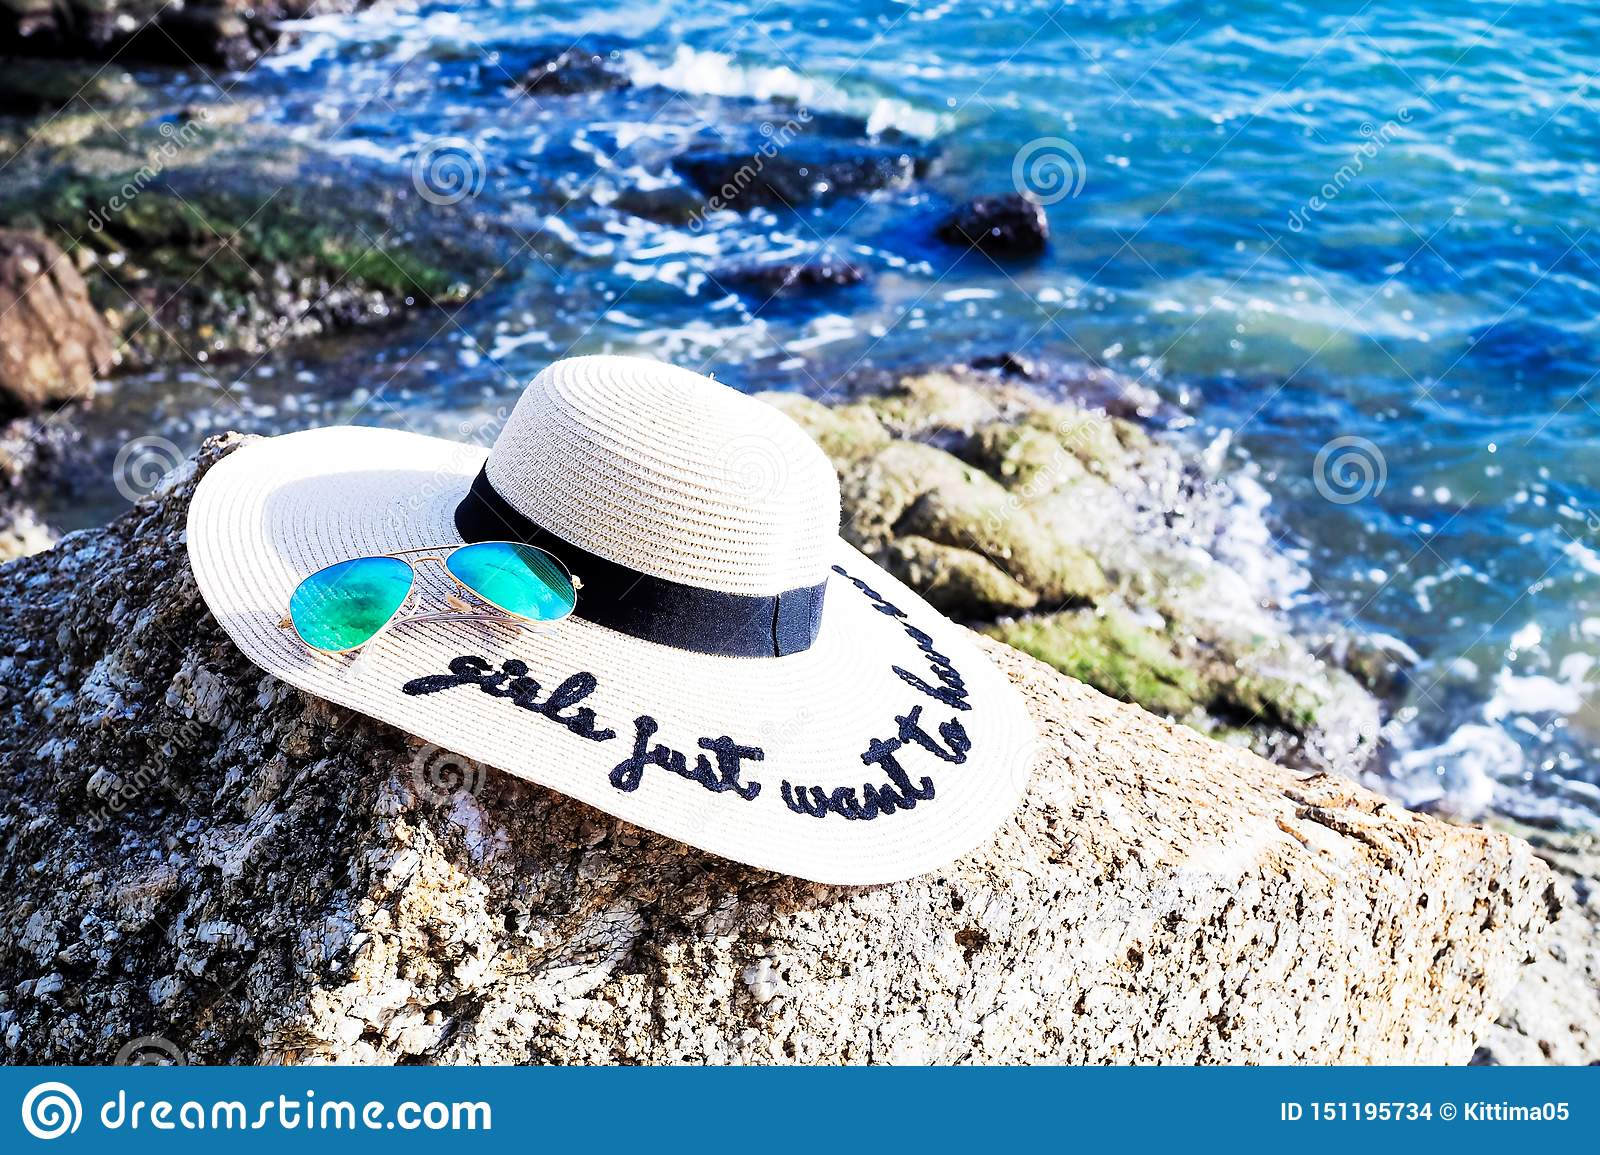 Beach fashion with women wide brim hats And sunglasses